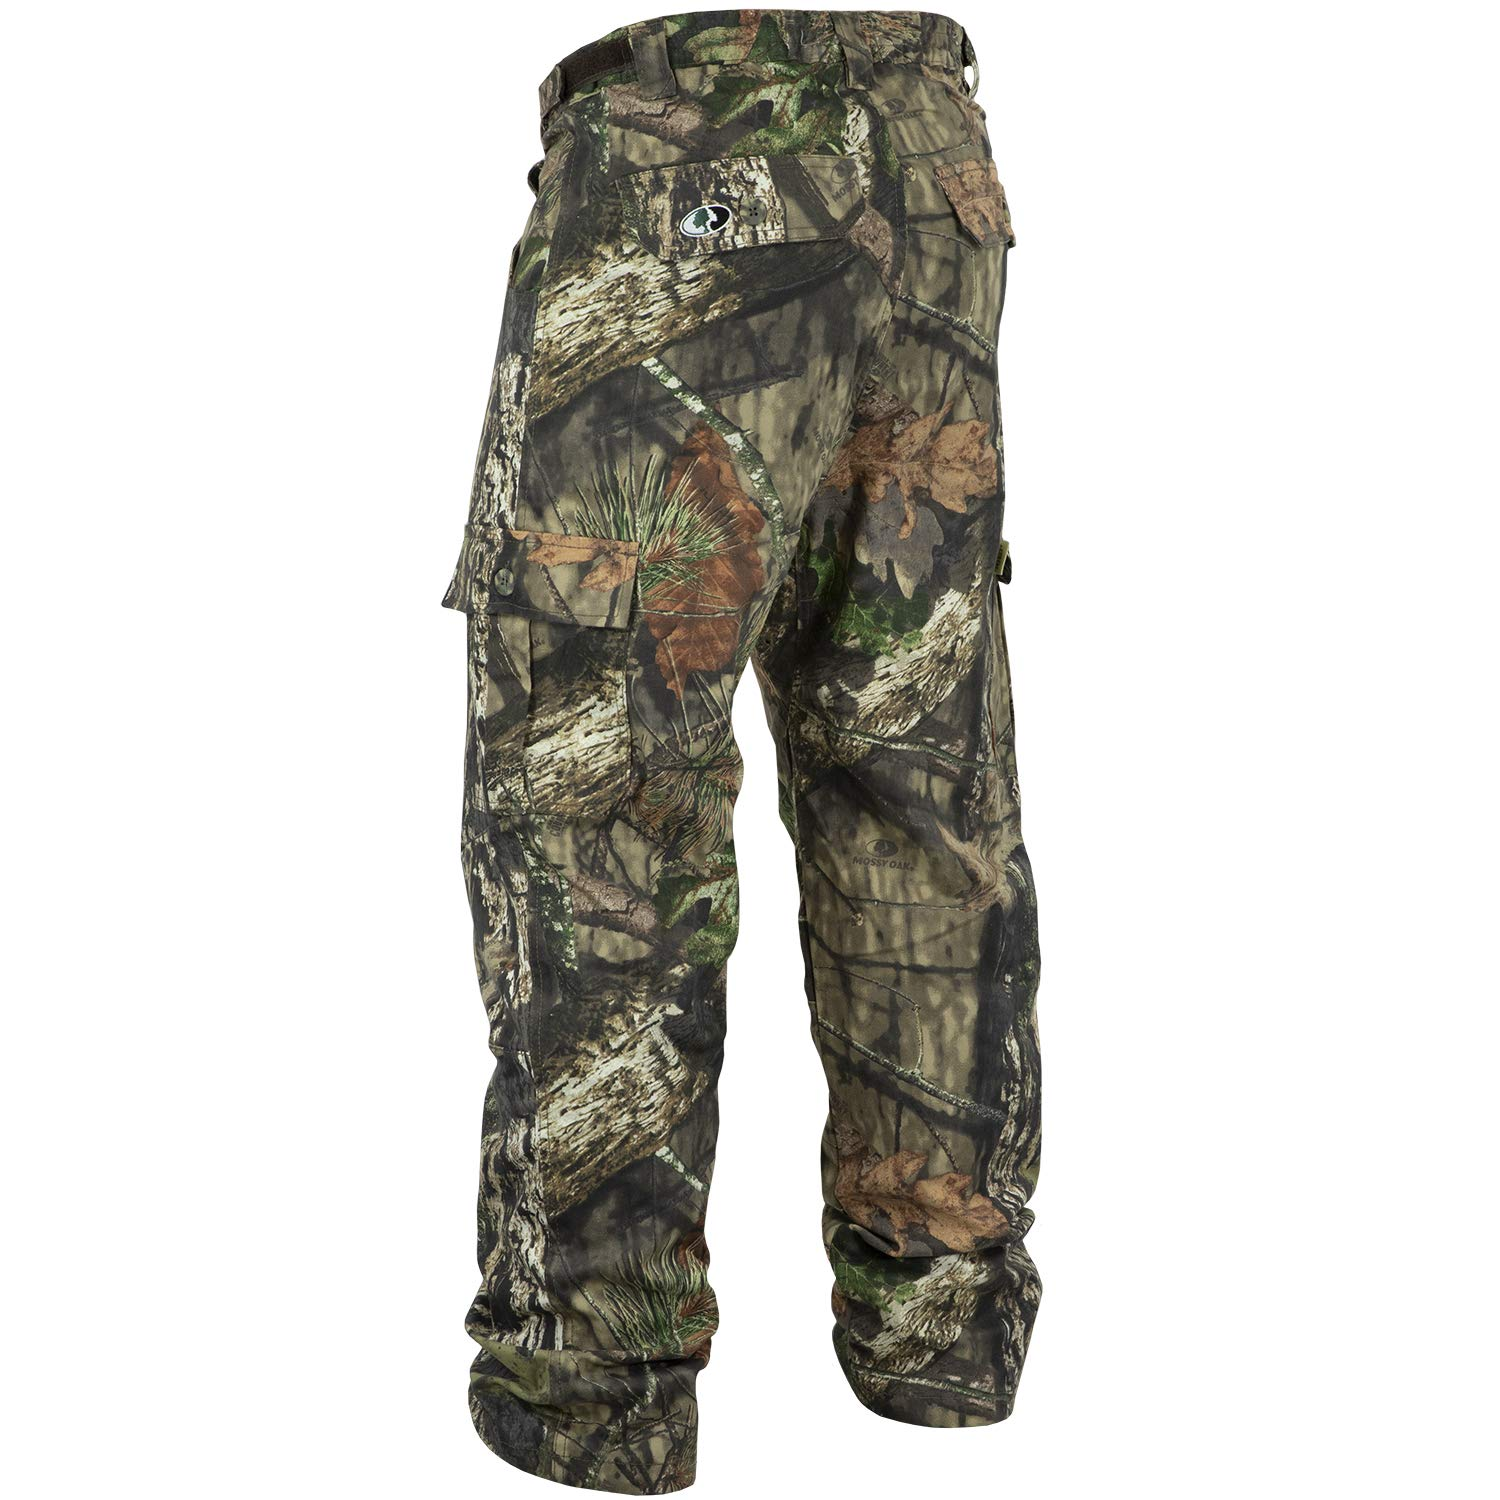 f8d1a116533a9 Amazon.com : Mossy Oak Youth Cotton Mill 2.0 Camouflage Hunting Pant in  Multiple Camo Patterns : Sports & Outdoors